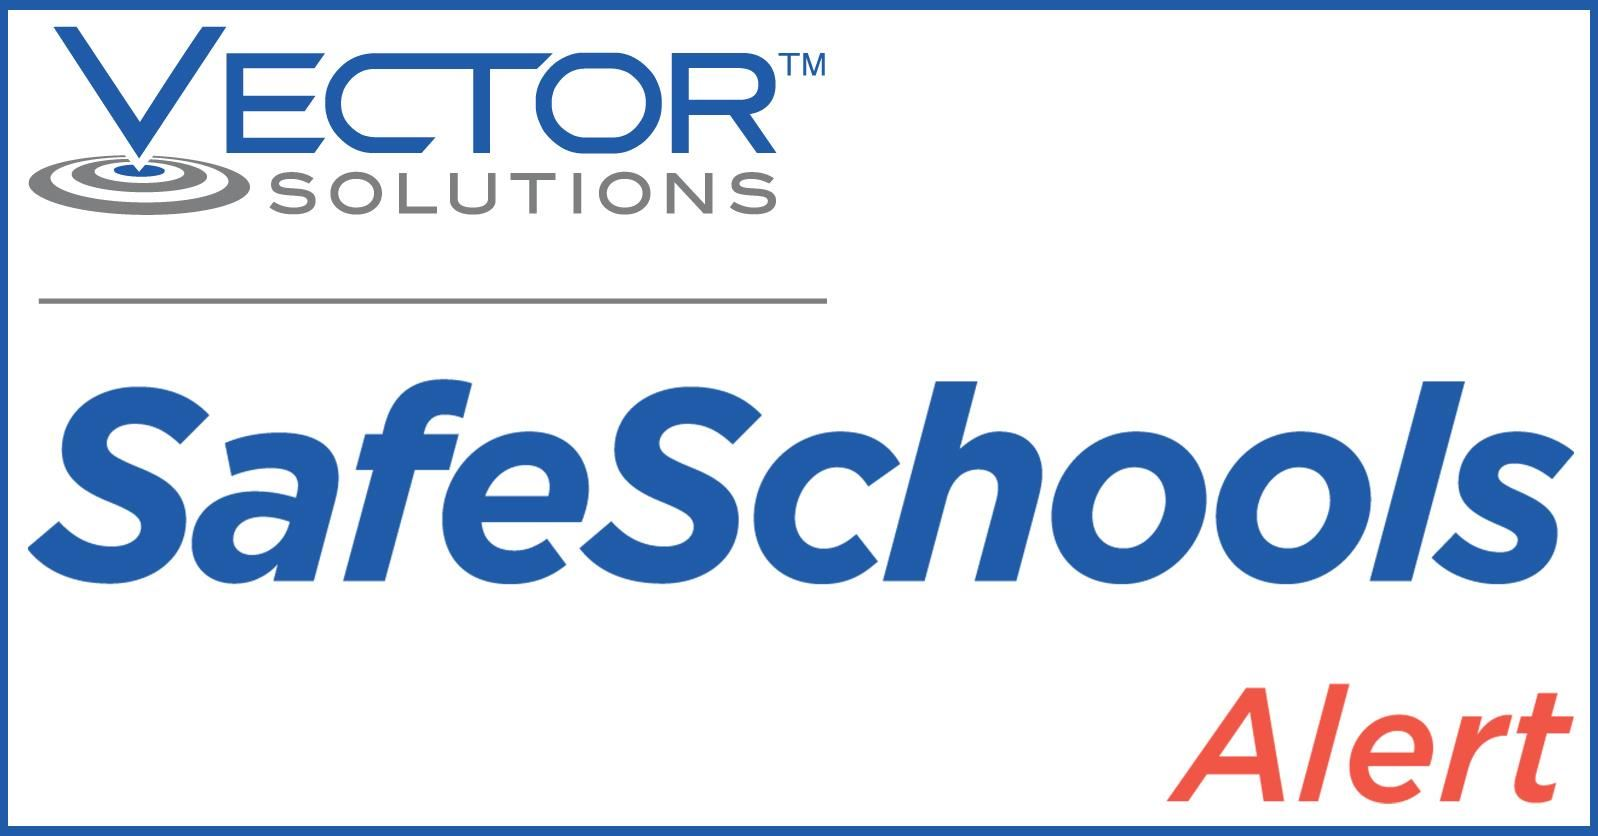 Vector Solutions SafeSchools Alert